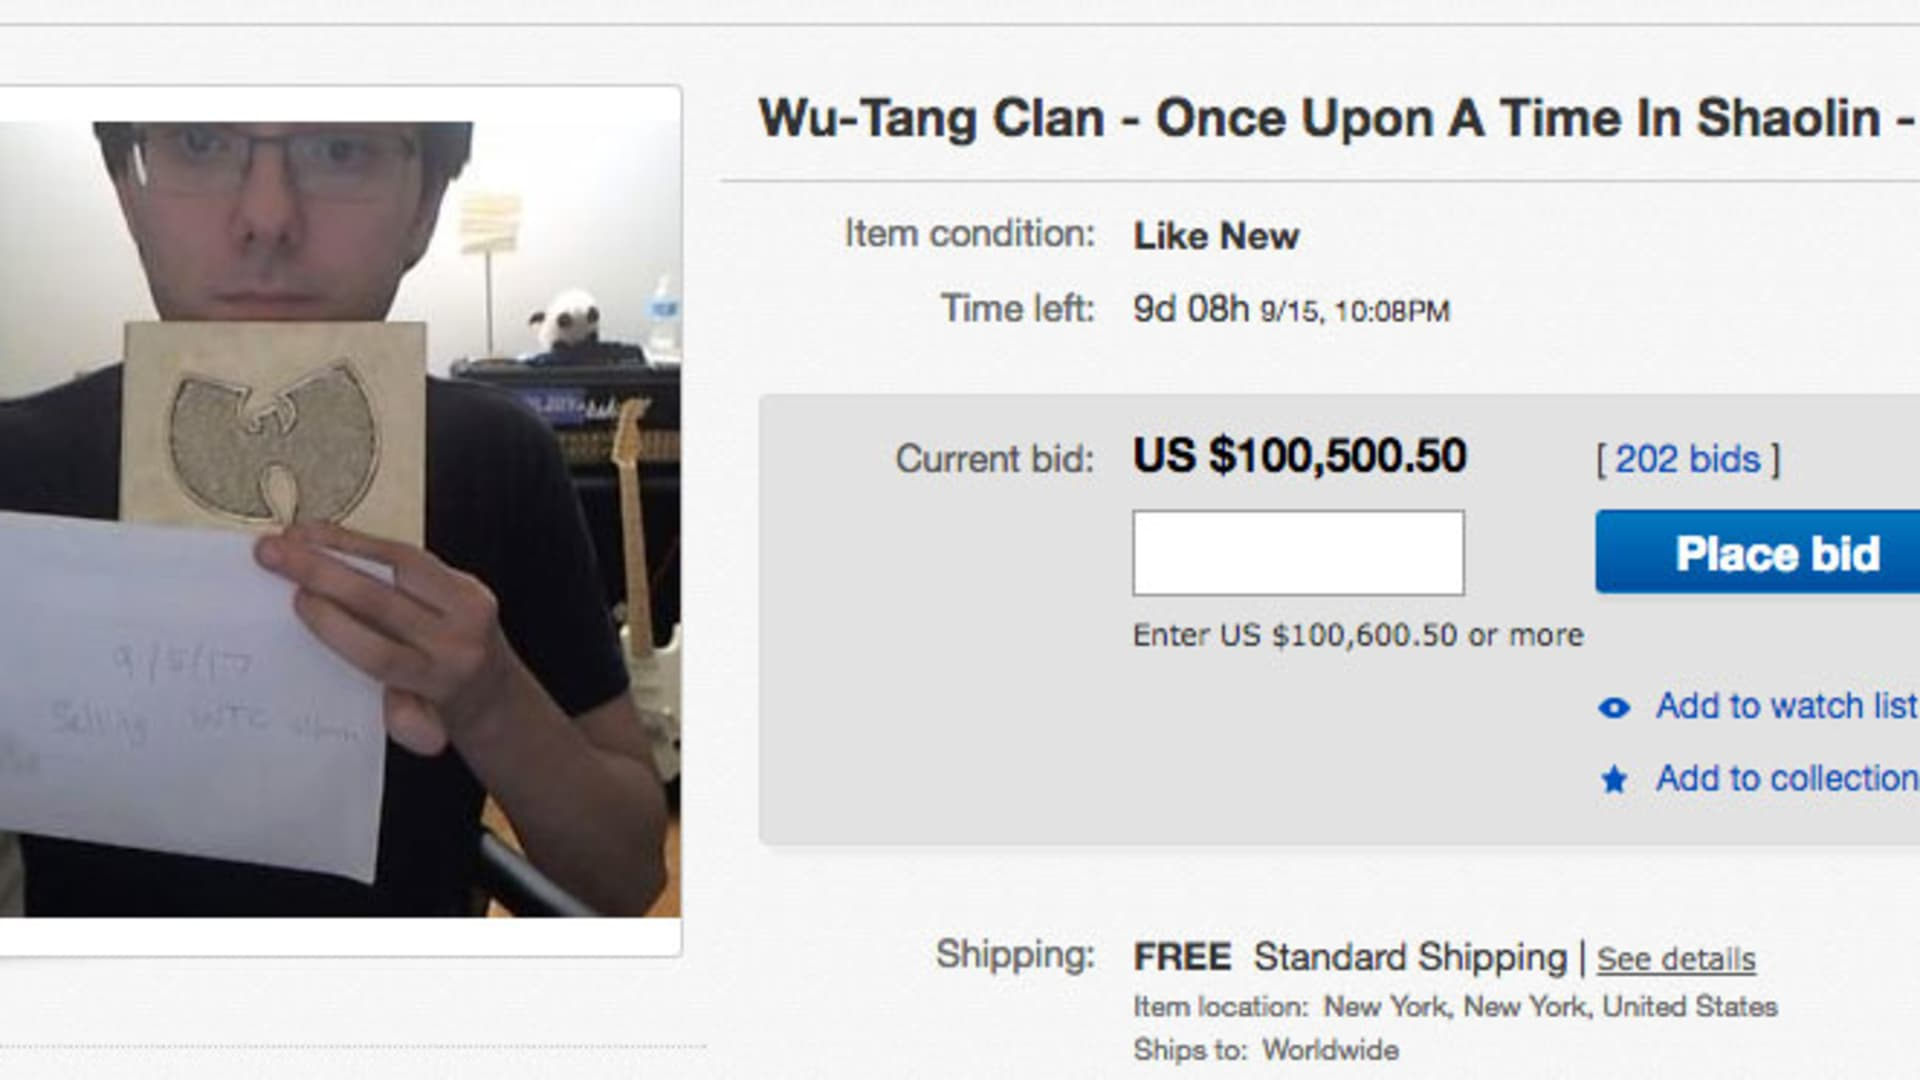 Martin Shkreli holds up a rare Wu-Tang Clan album for sale.